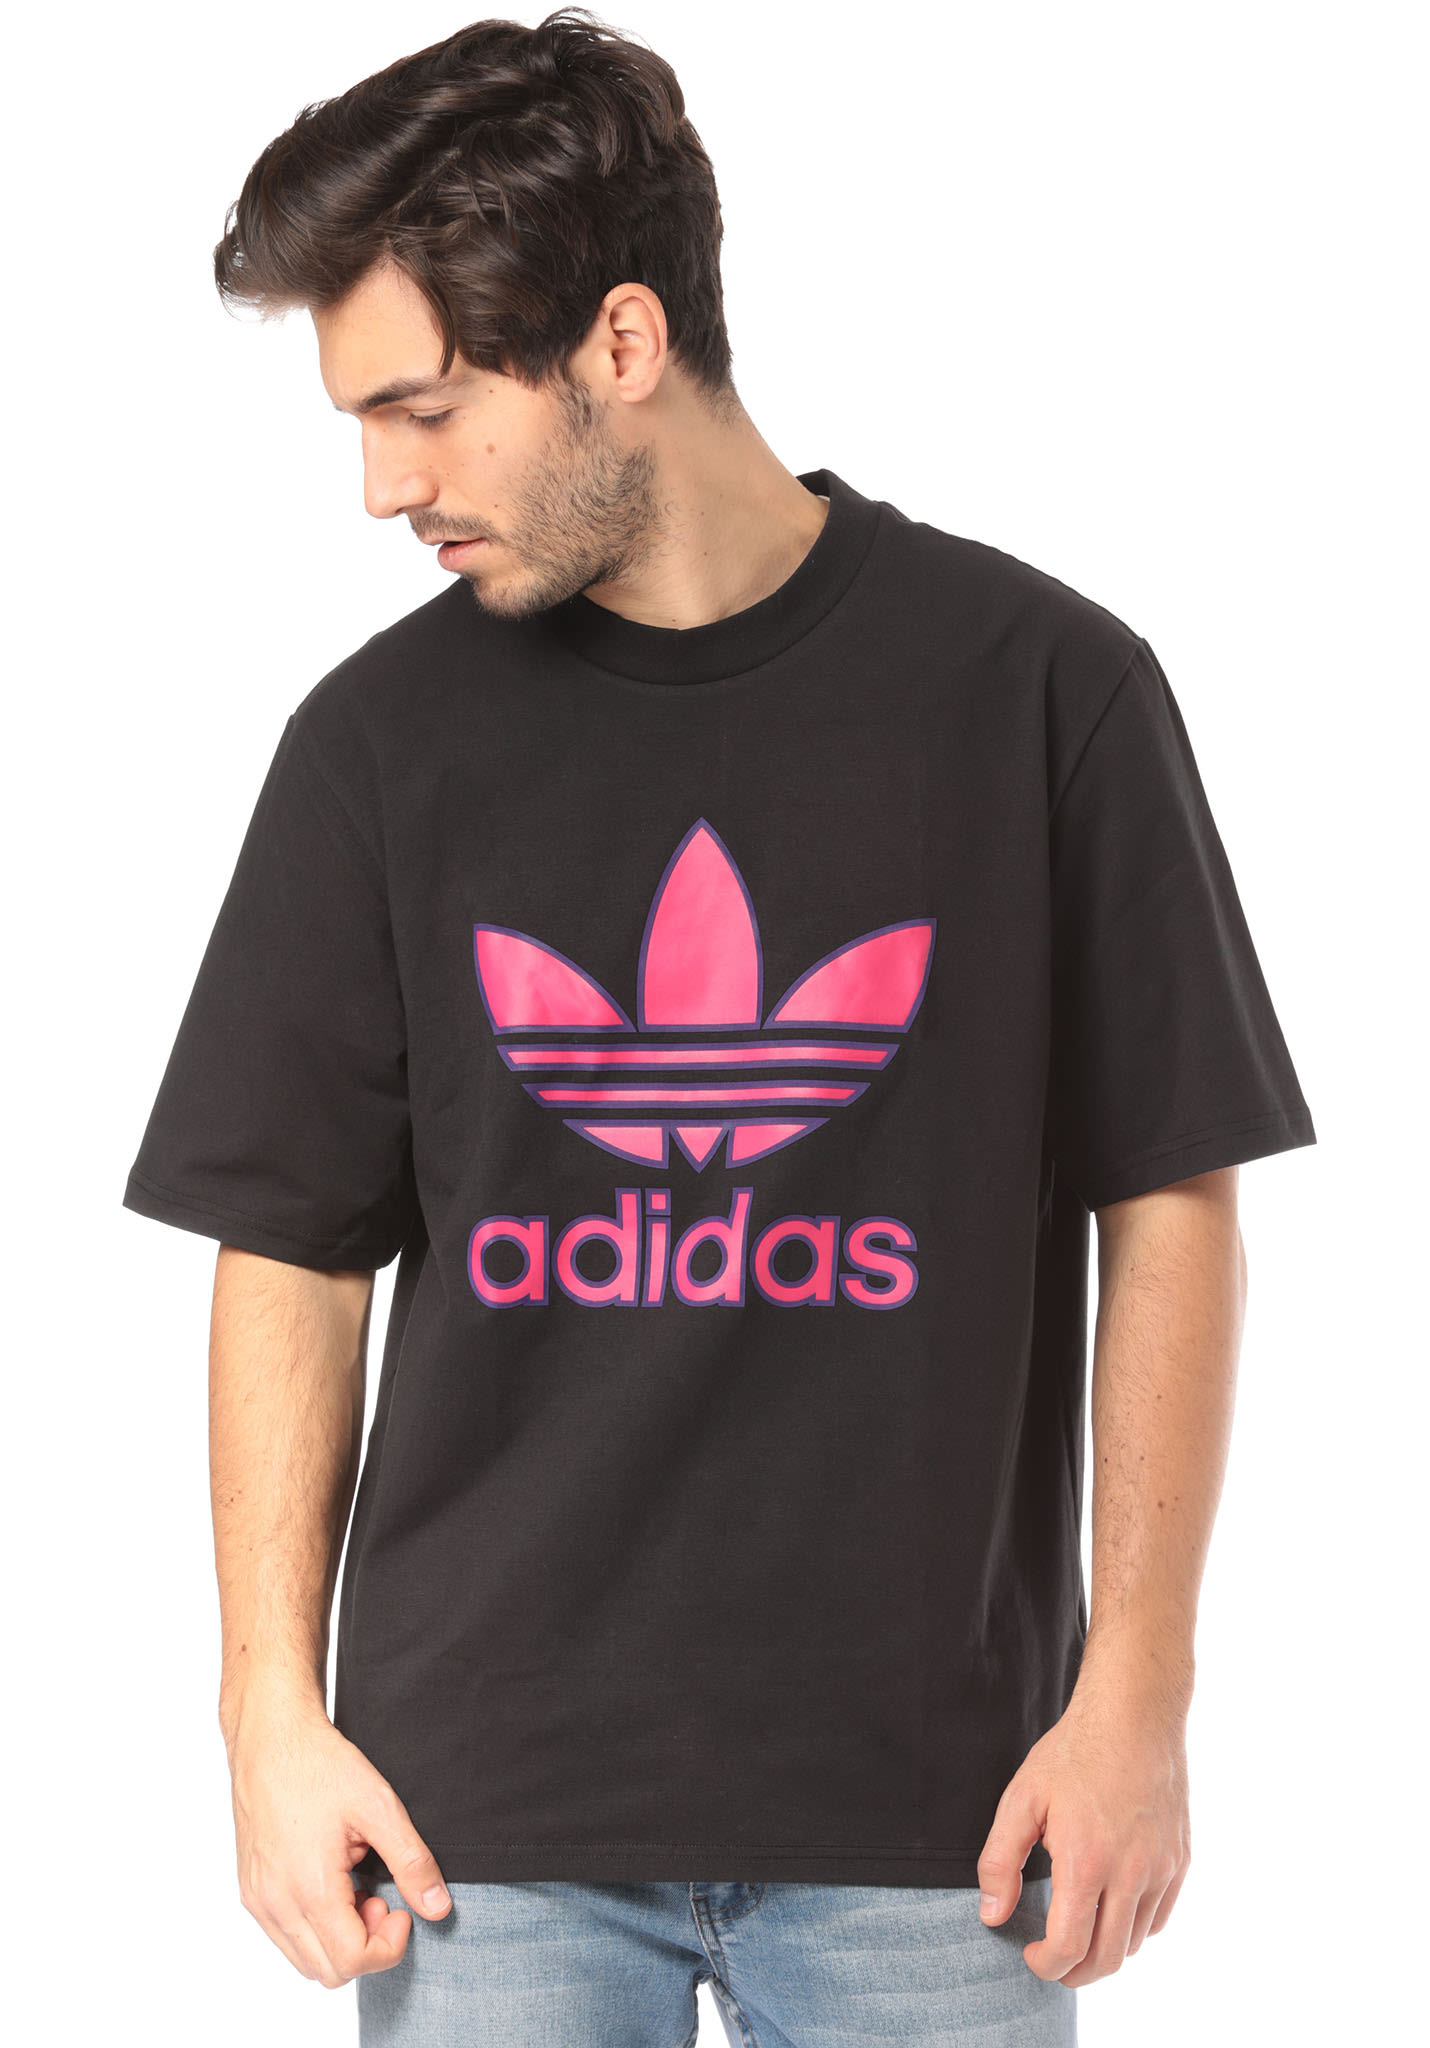 Adidas Shirt Black Originals For T Trefoil Men nPwOk80